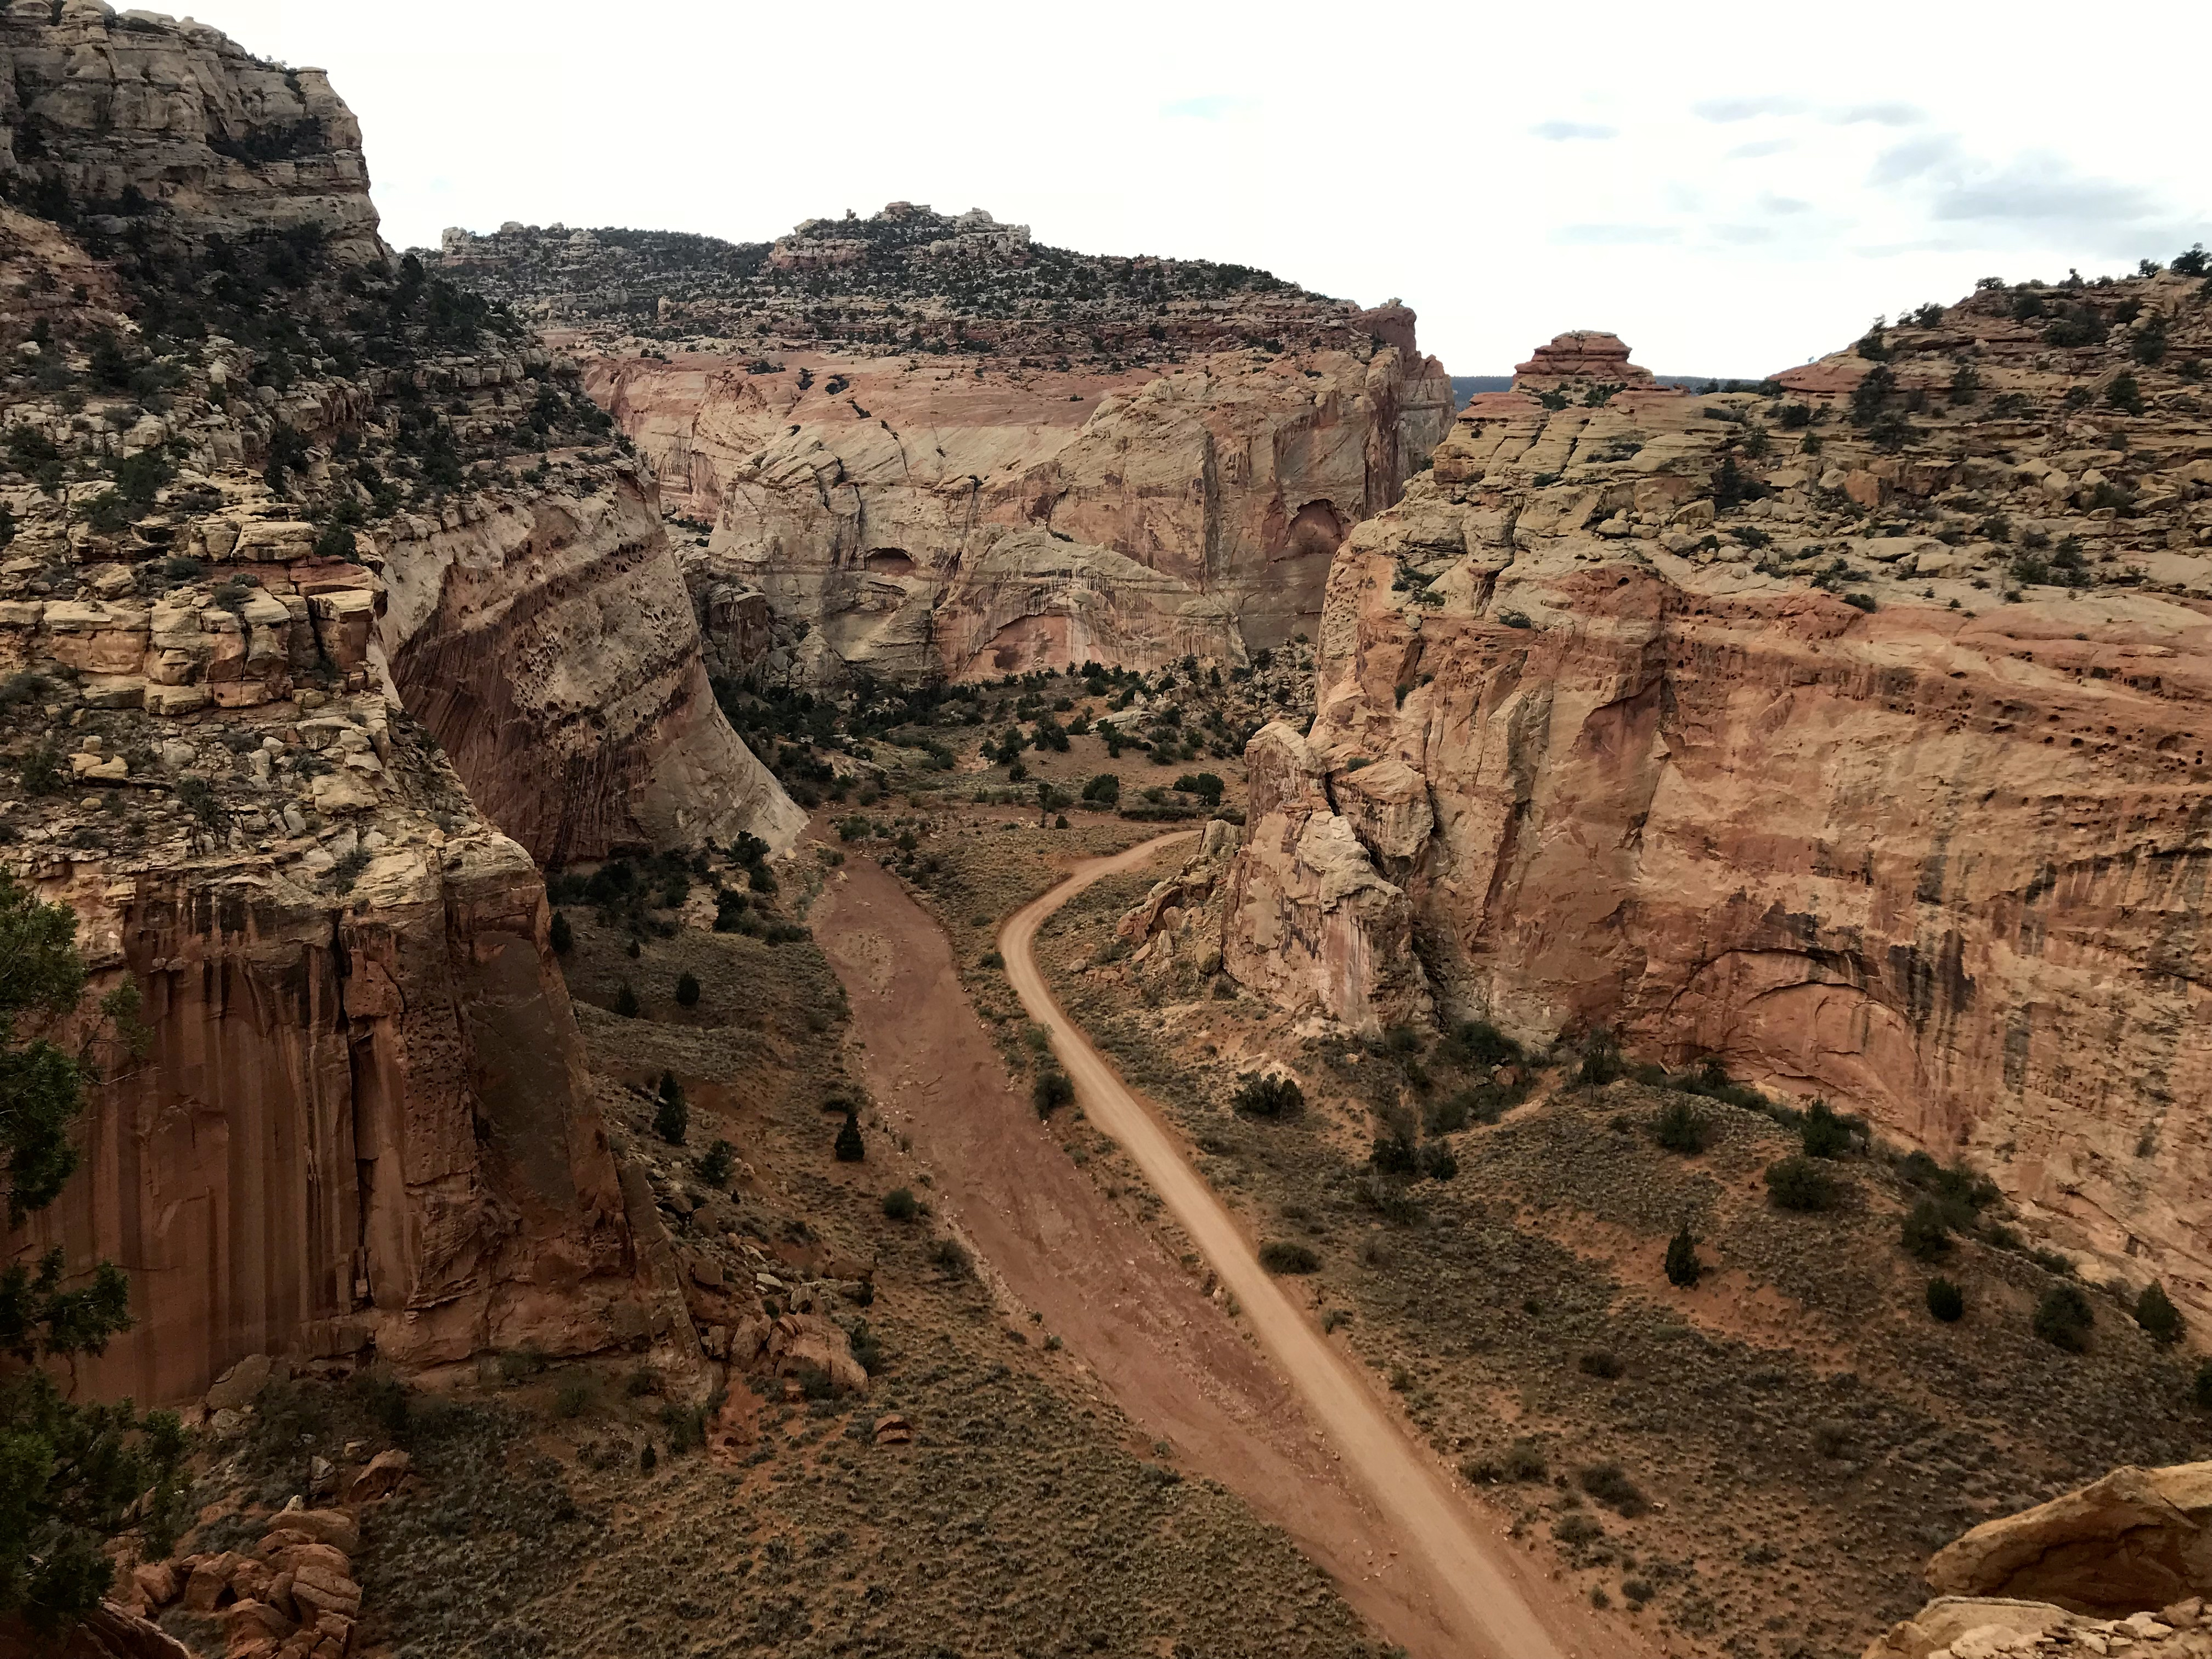 Utah's Least-Visited National Park Is a Secret Oasis: Guide to Capitol Reef